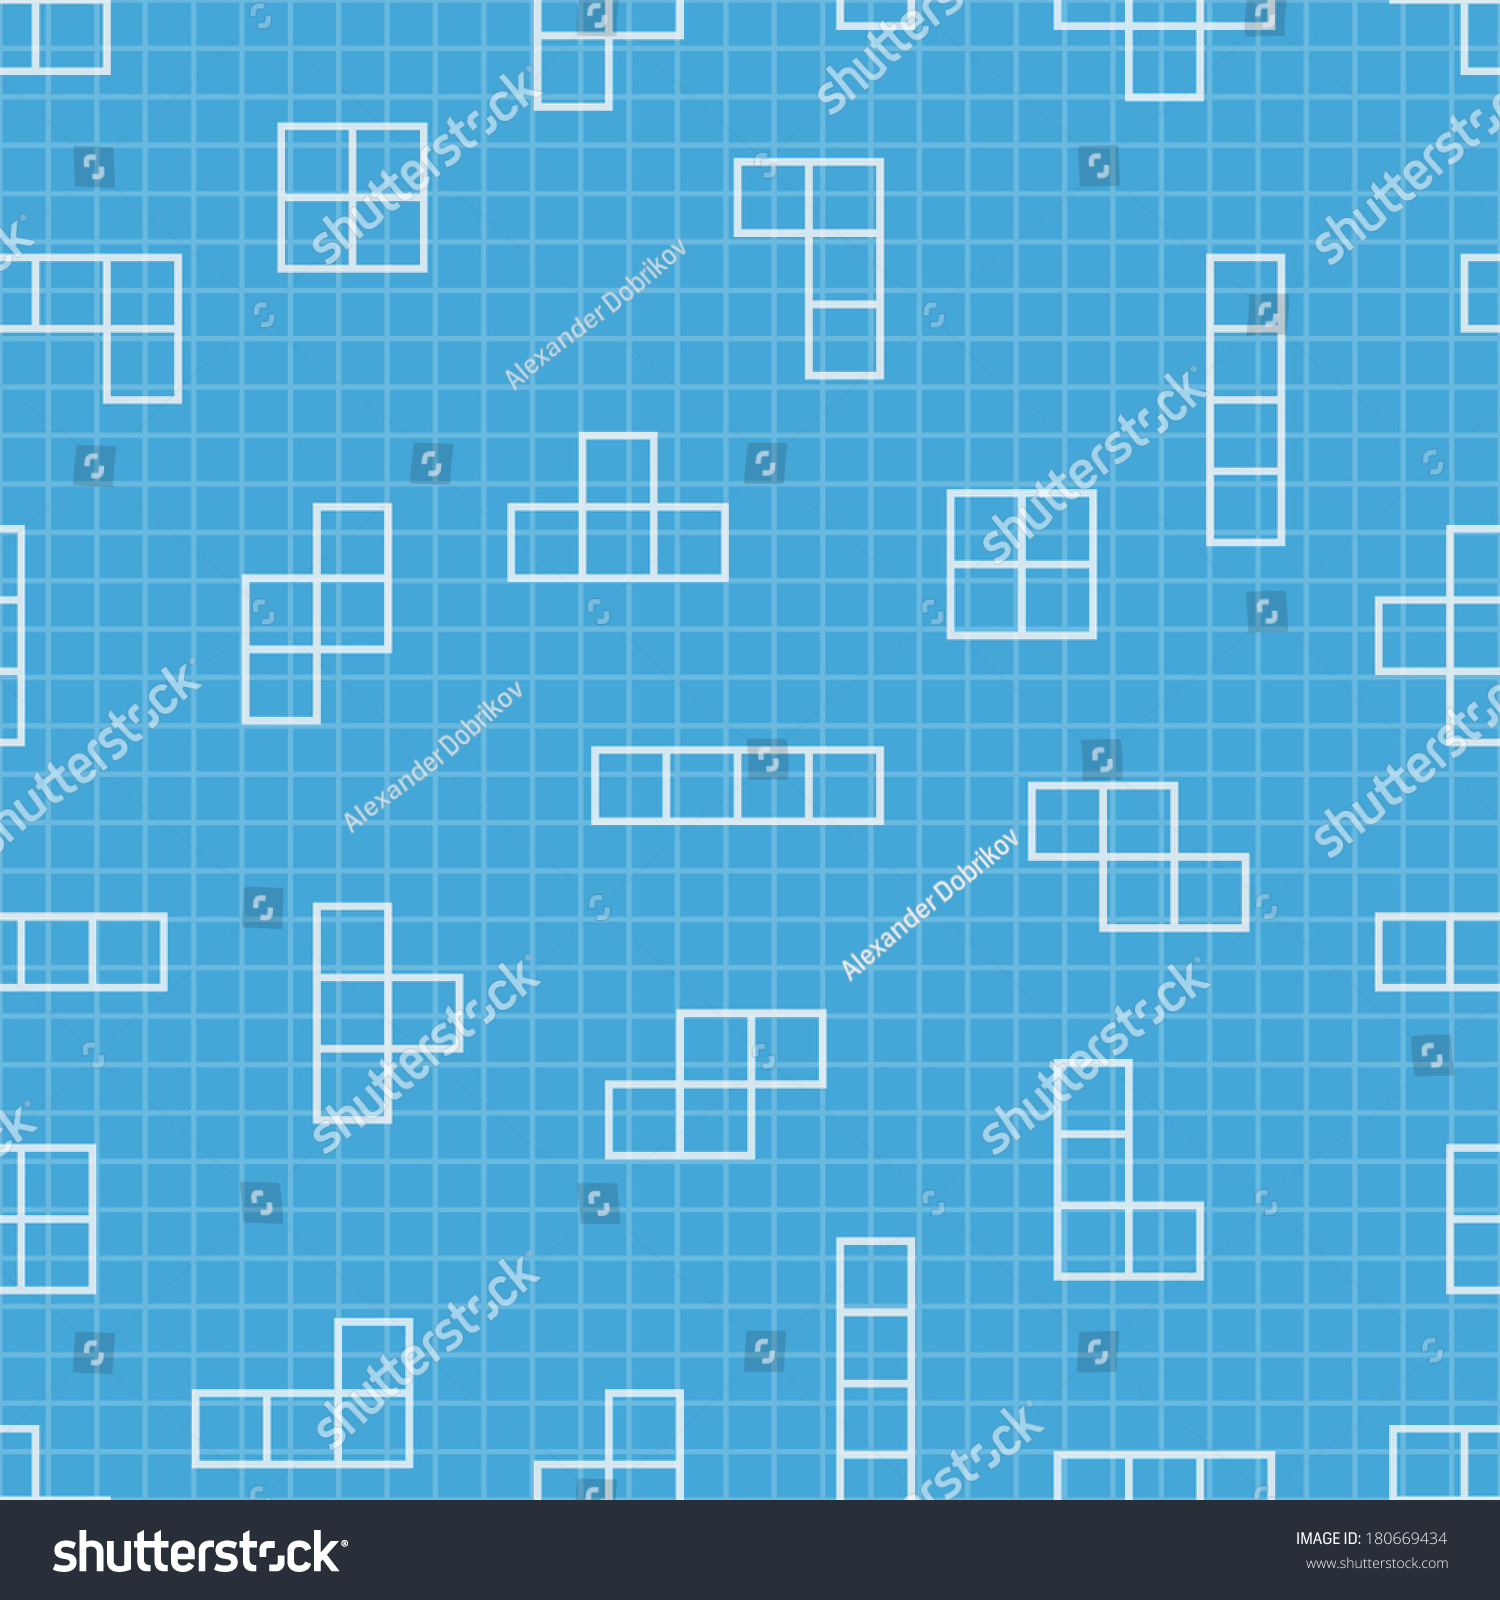 Seamless pattern blueprint design vector elements stock vector seamless pattern blueprint design vector elements game background minimal illustration use malvernweather